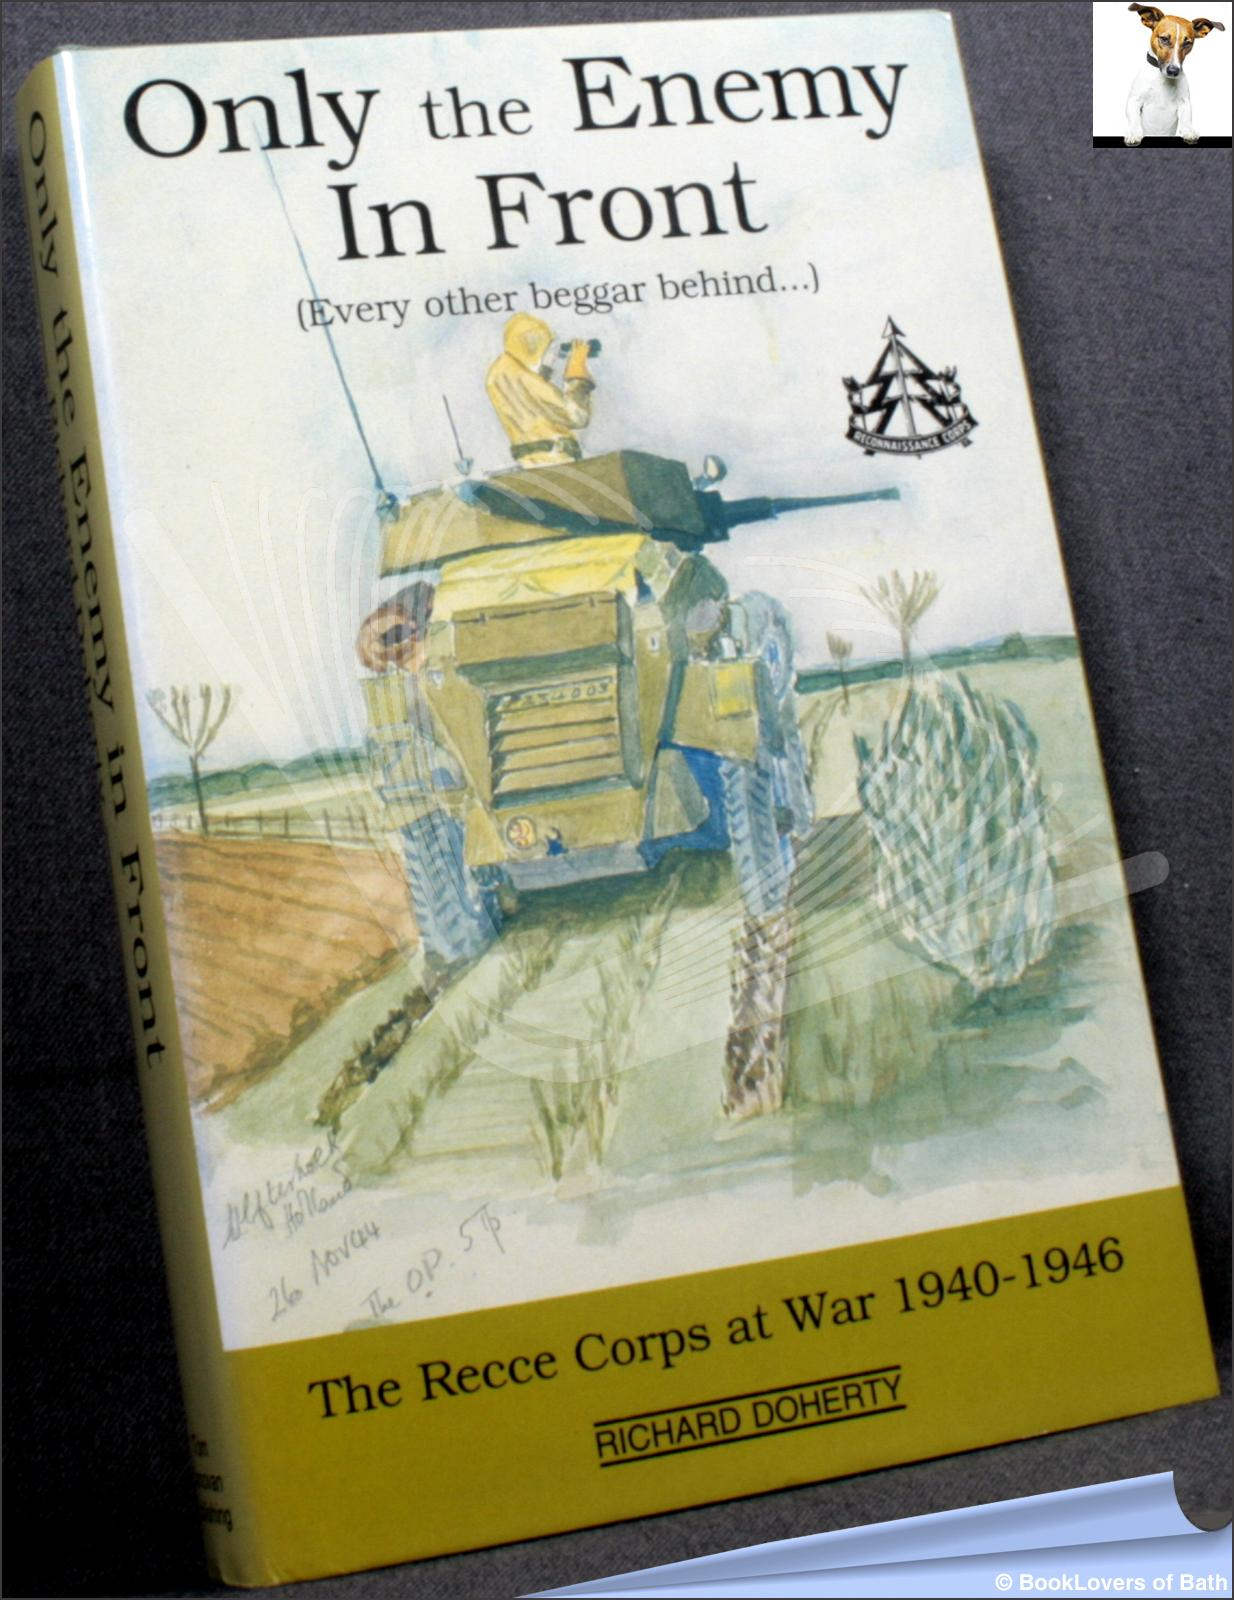 Only the Enemy in Front (every Other Beggar Behind...): The Recce Corps at War, 1940-1946 - Richard Doherty